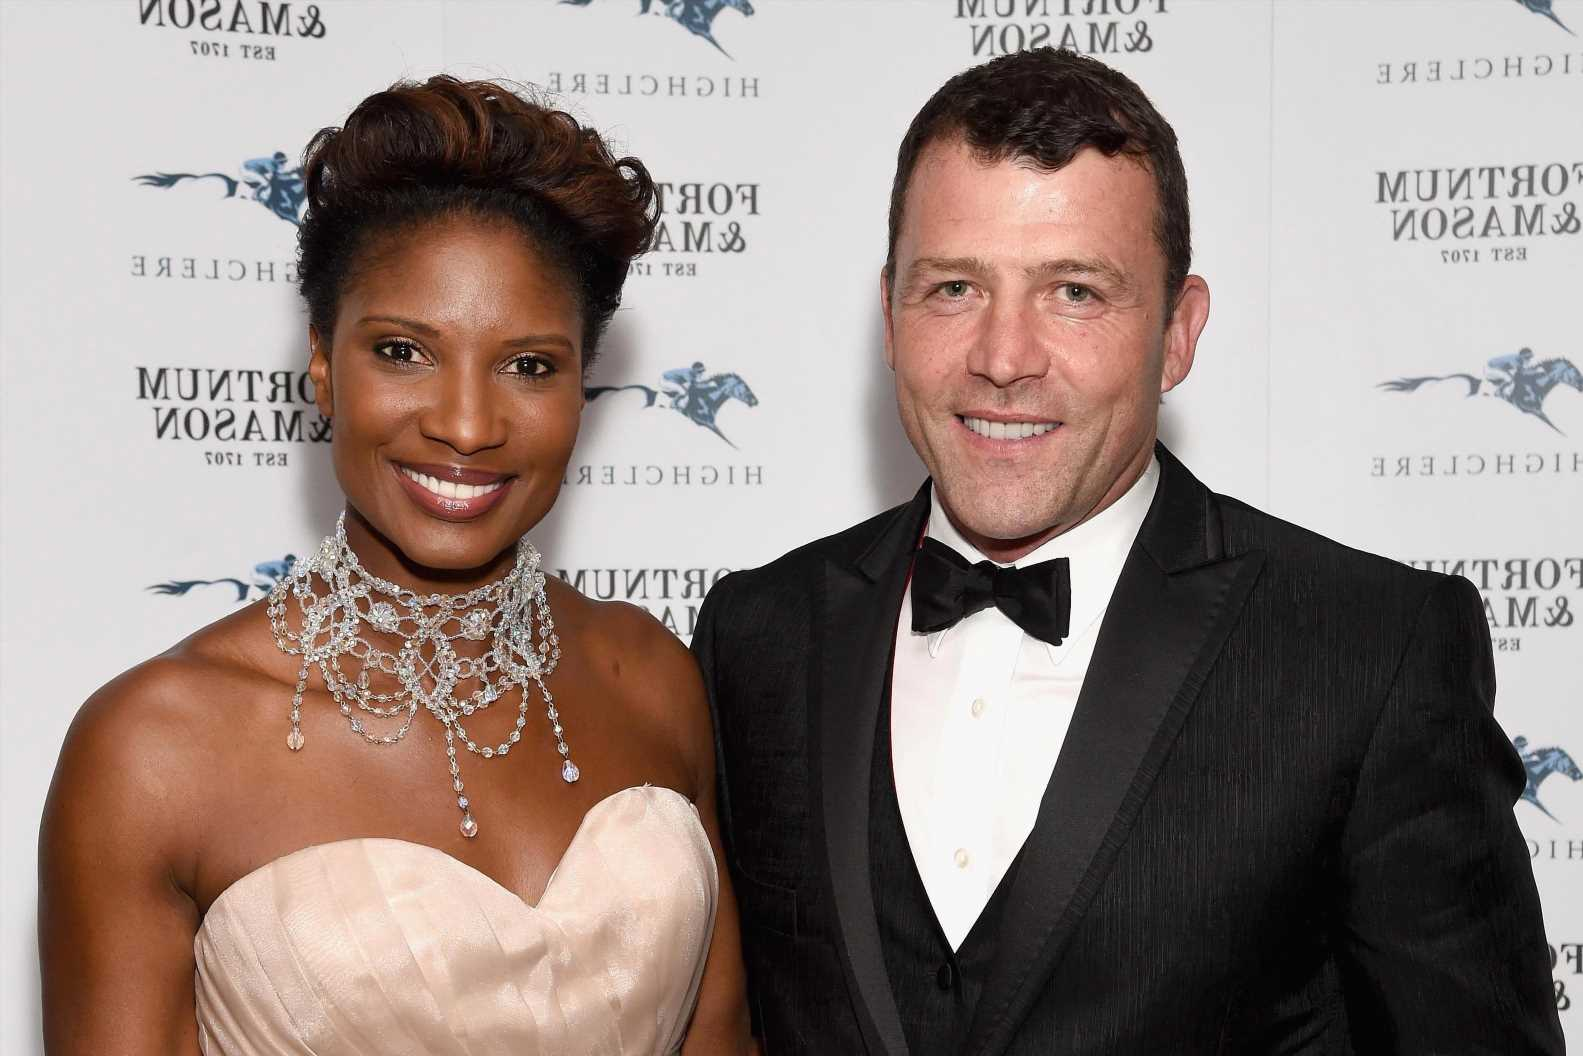 Who is Steve Finan O'Connor? Denise Lewis' husband and ex-All Saints manager